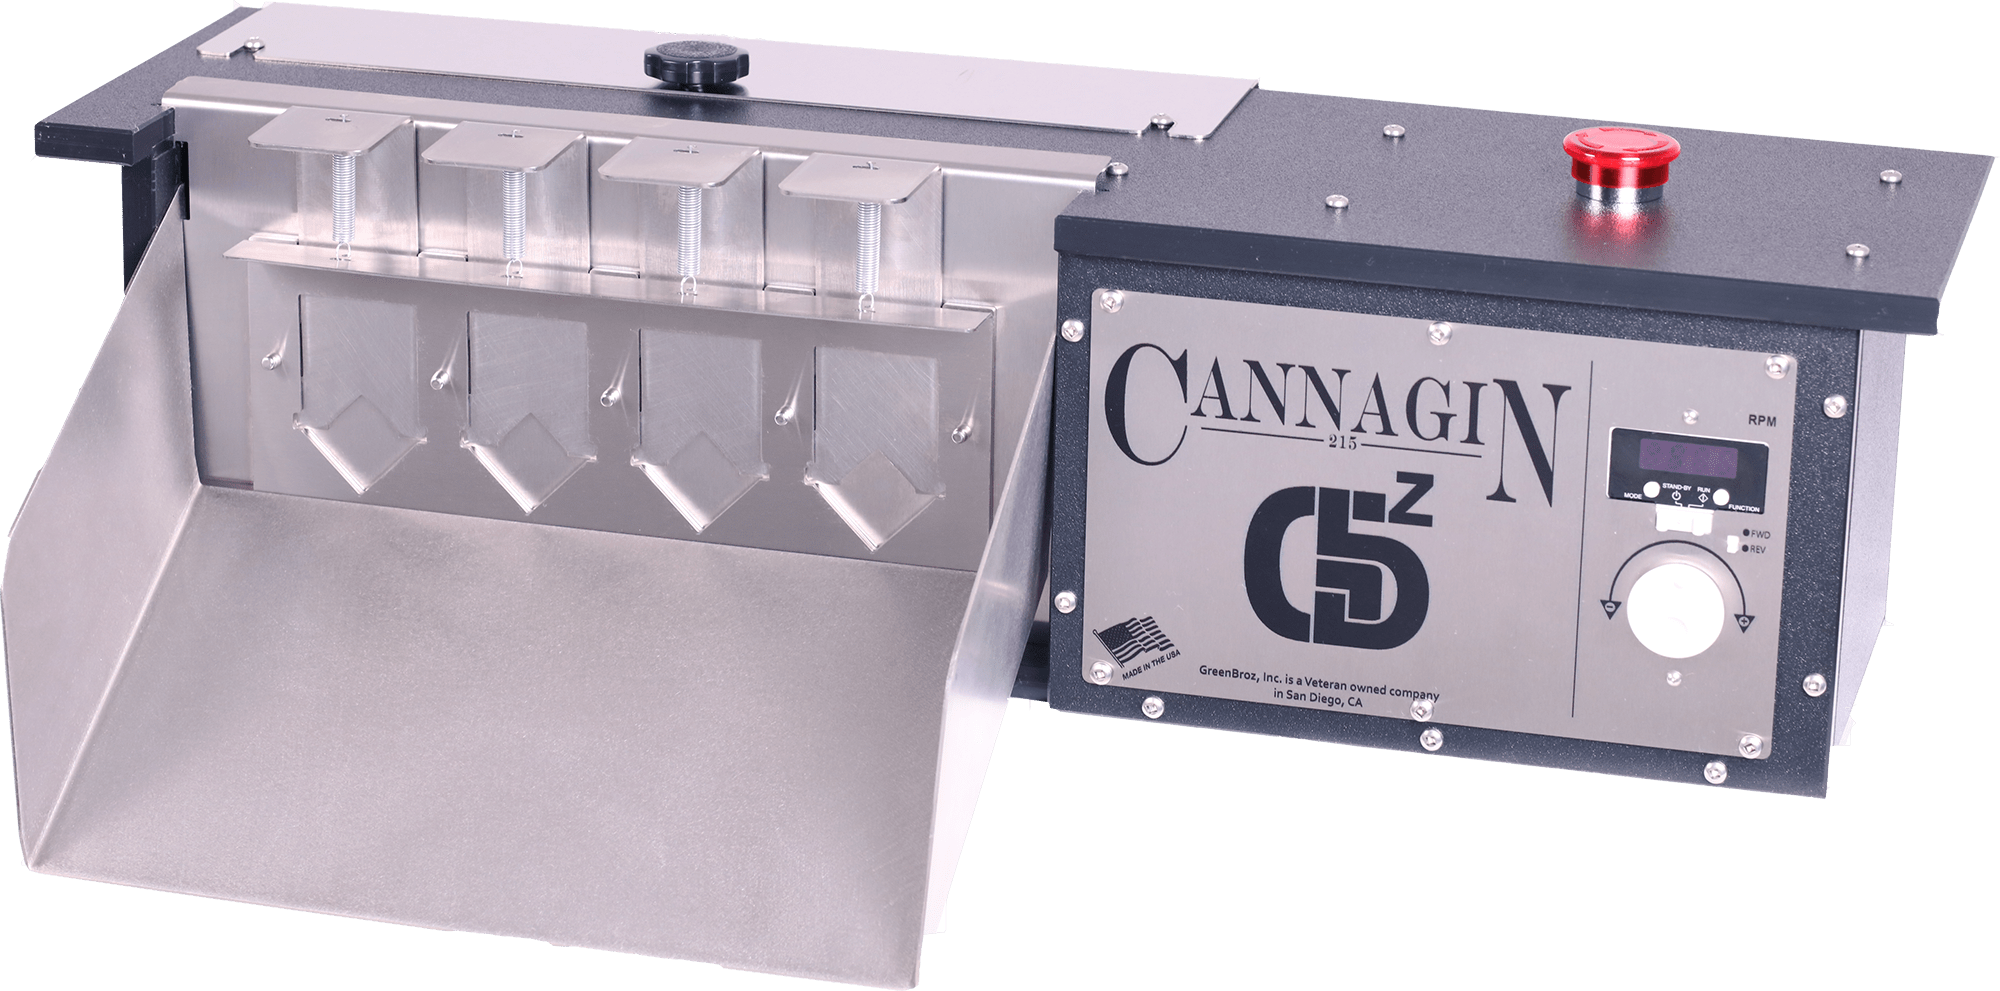 CannaGin 215 4-Door Faceplate